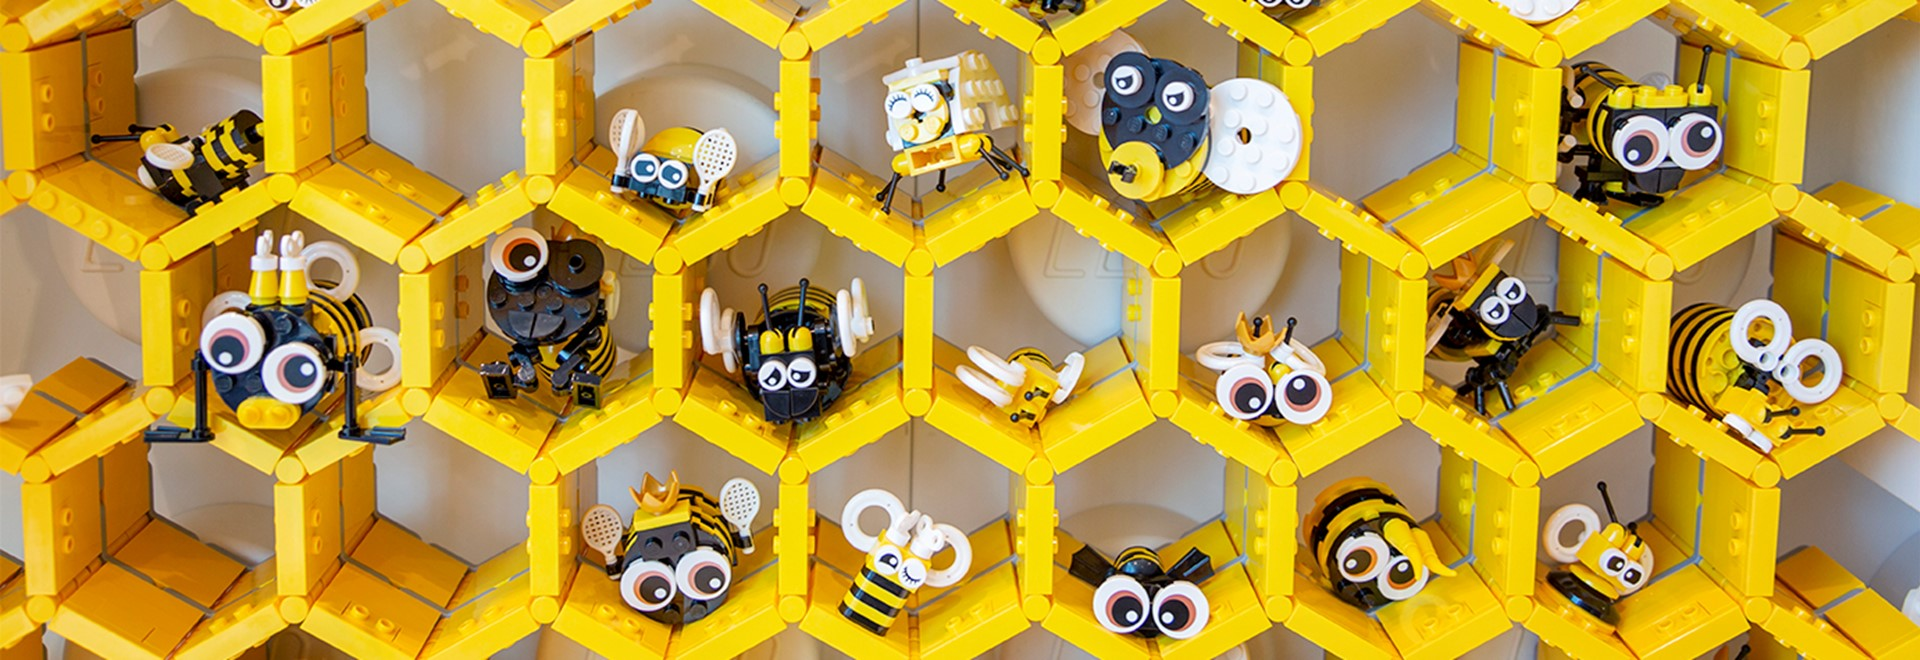 Build LEGO bees in Creative Lab in LEGO House.